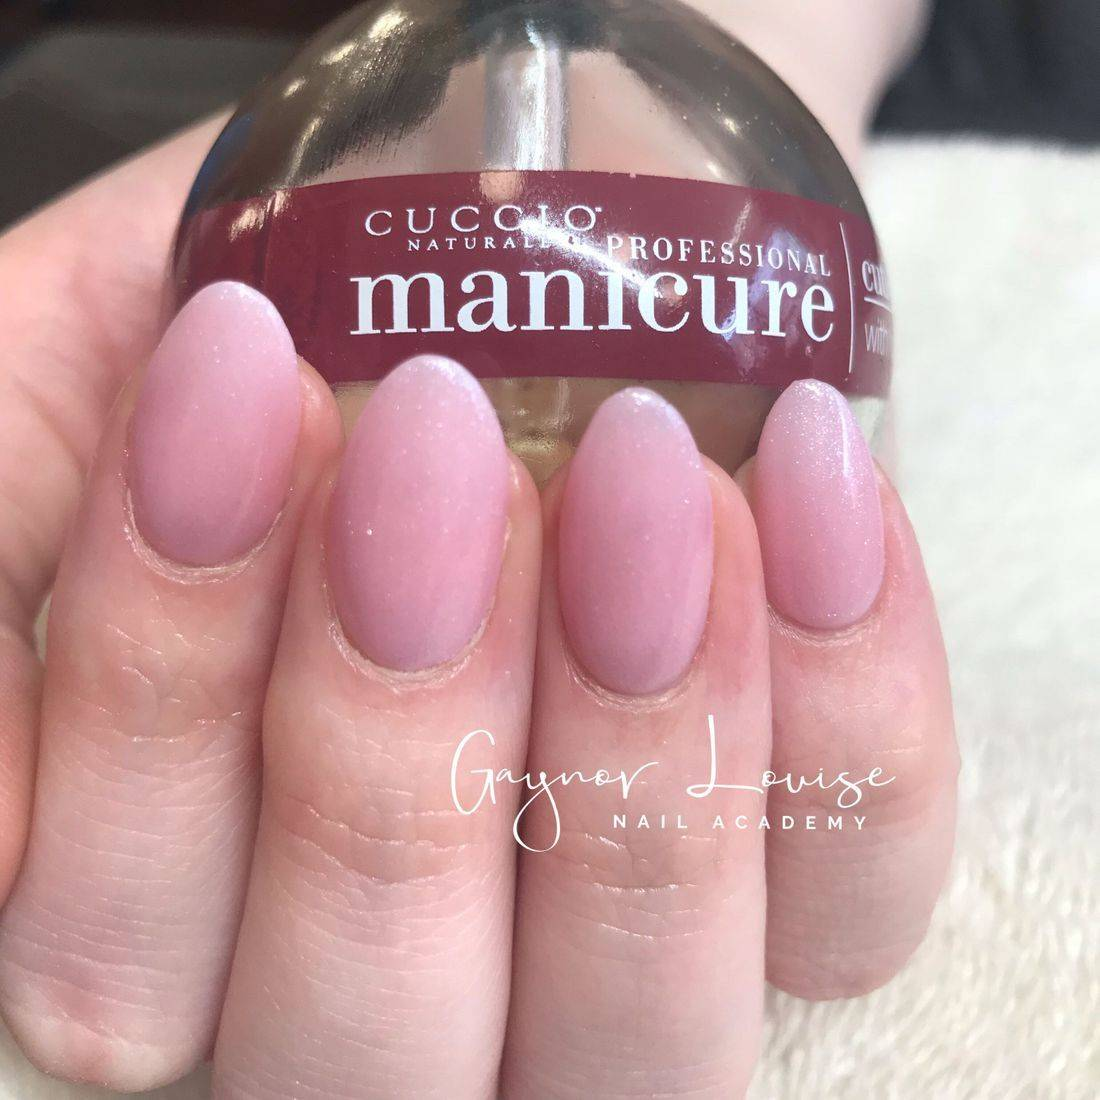 nail training, nail courses, nail training north west, bury, manchester, cuccio nail course, nail educator manchester, become a nail technician, Hard gel extensions